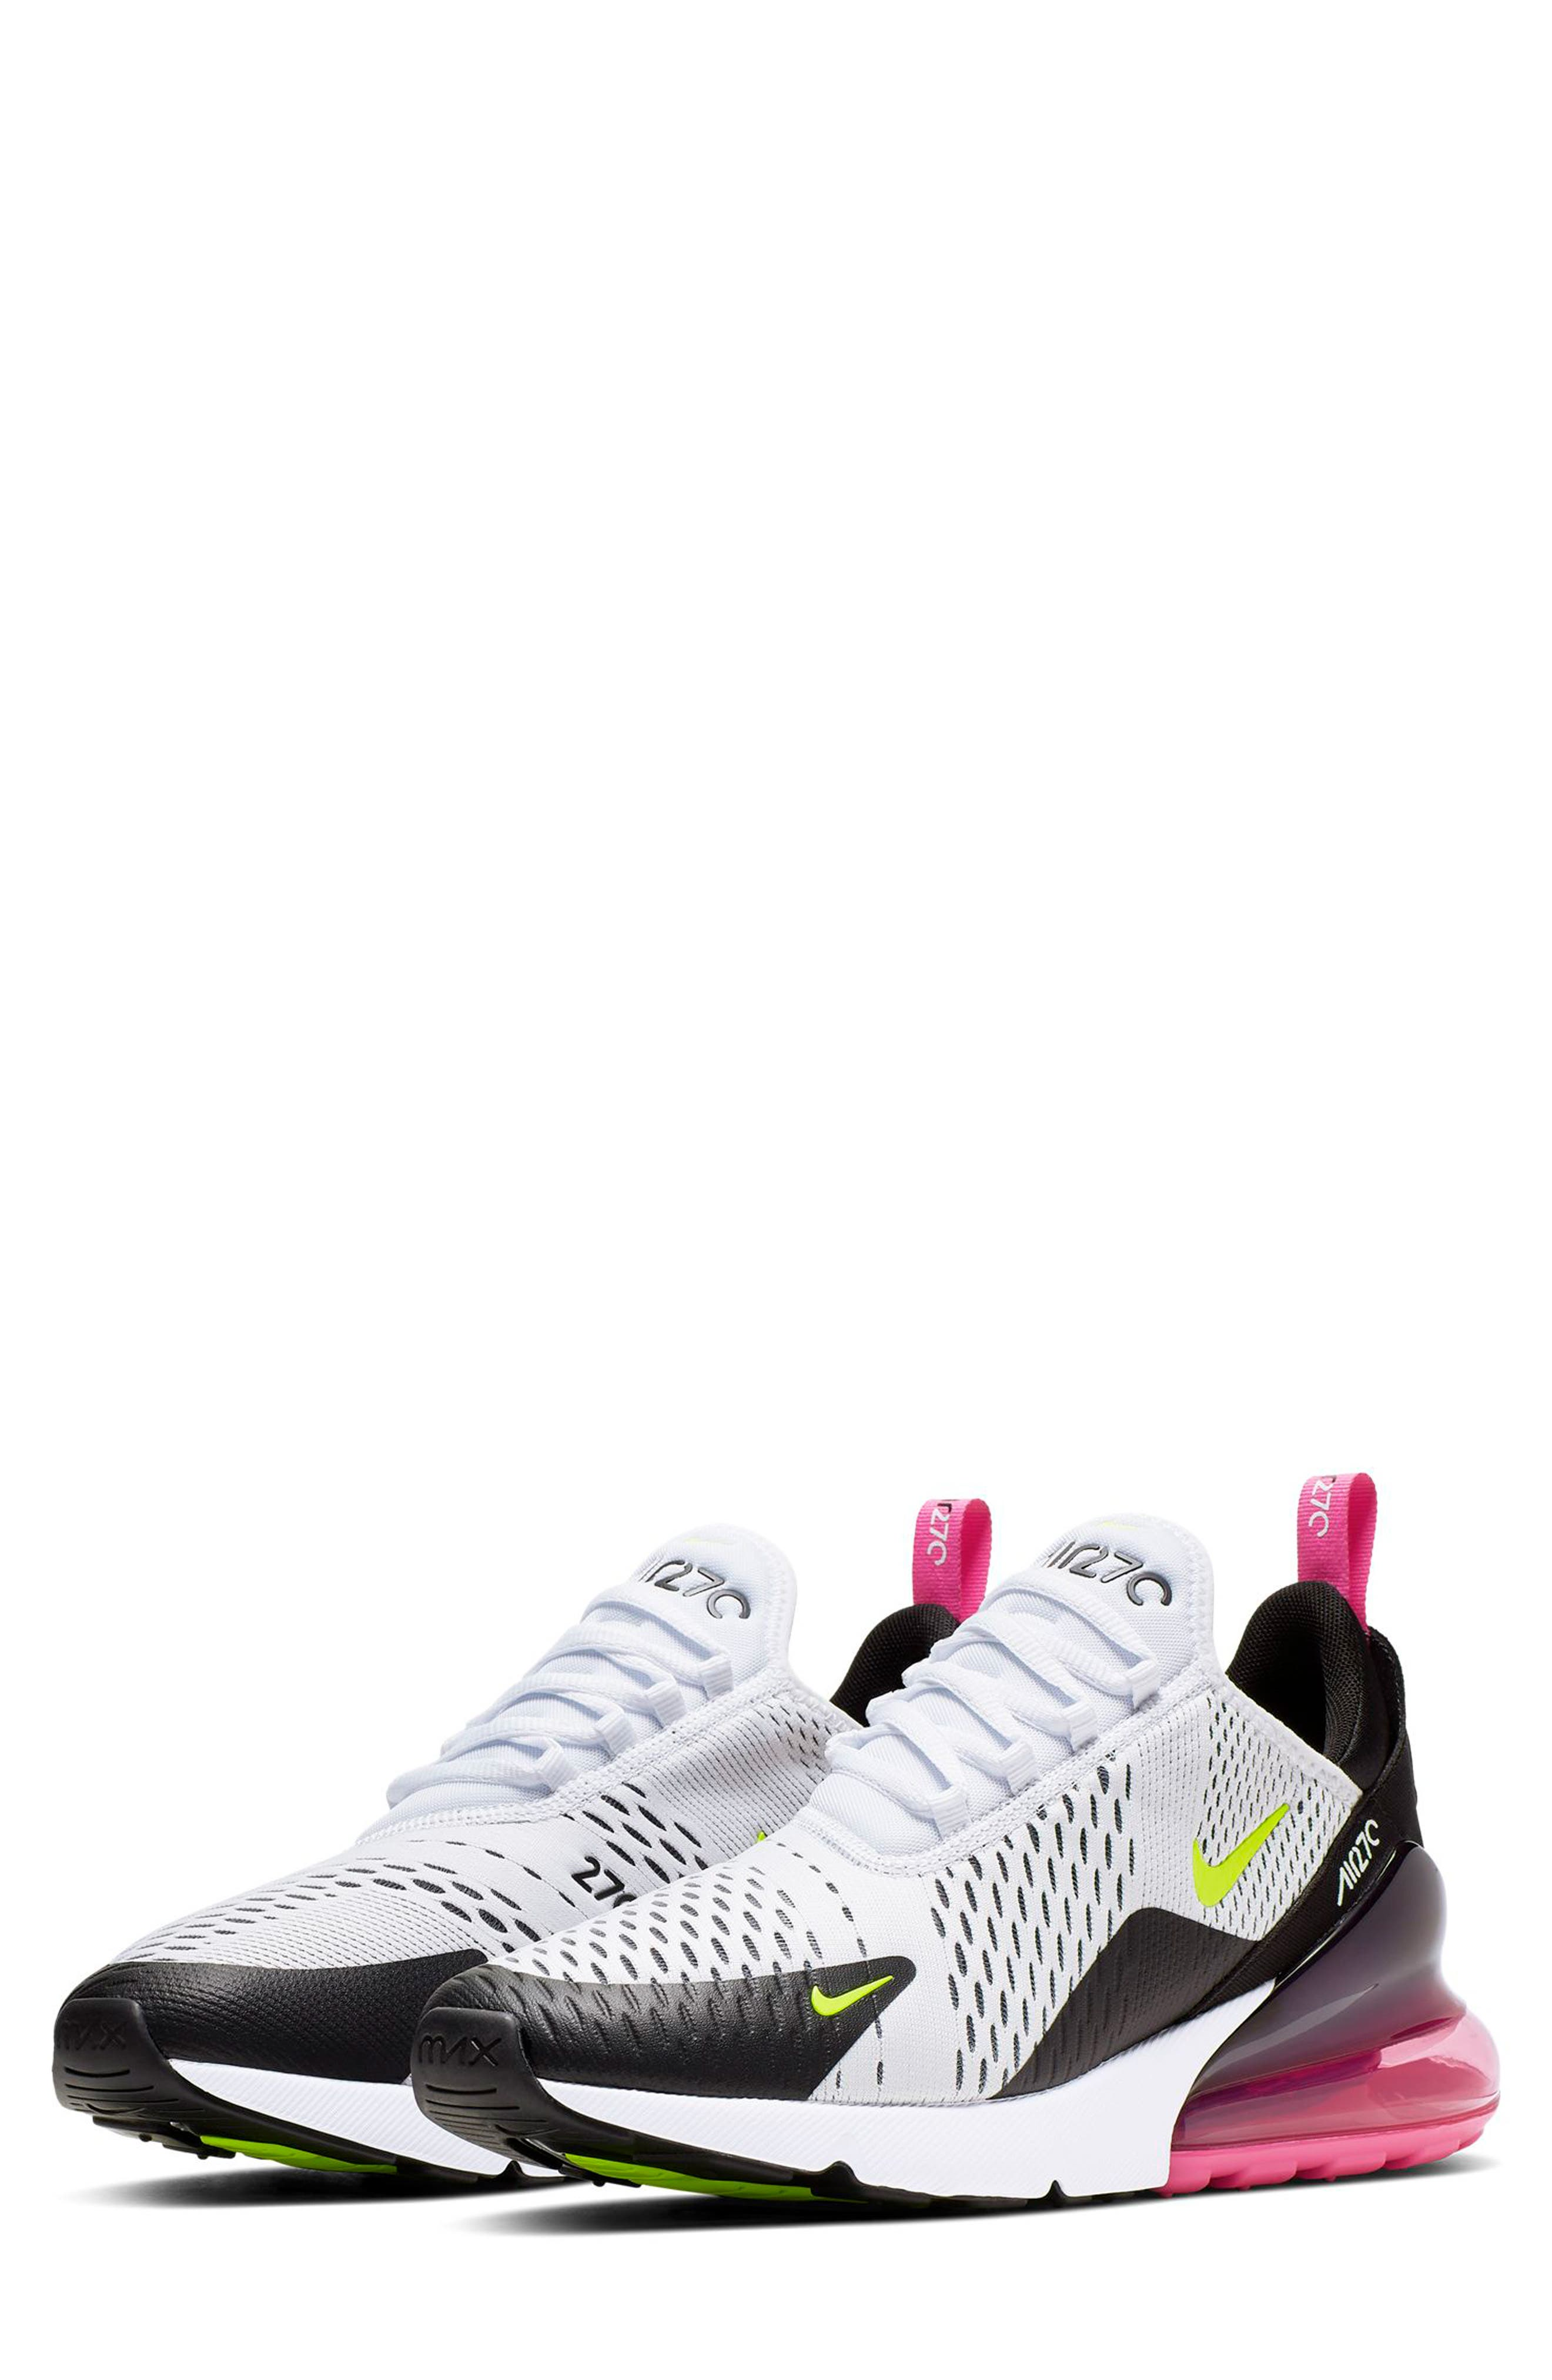 Men's Sneakers, Athletic & Running Shoes | Nordstrom